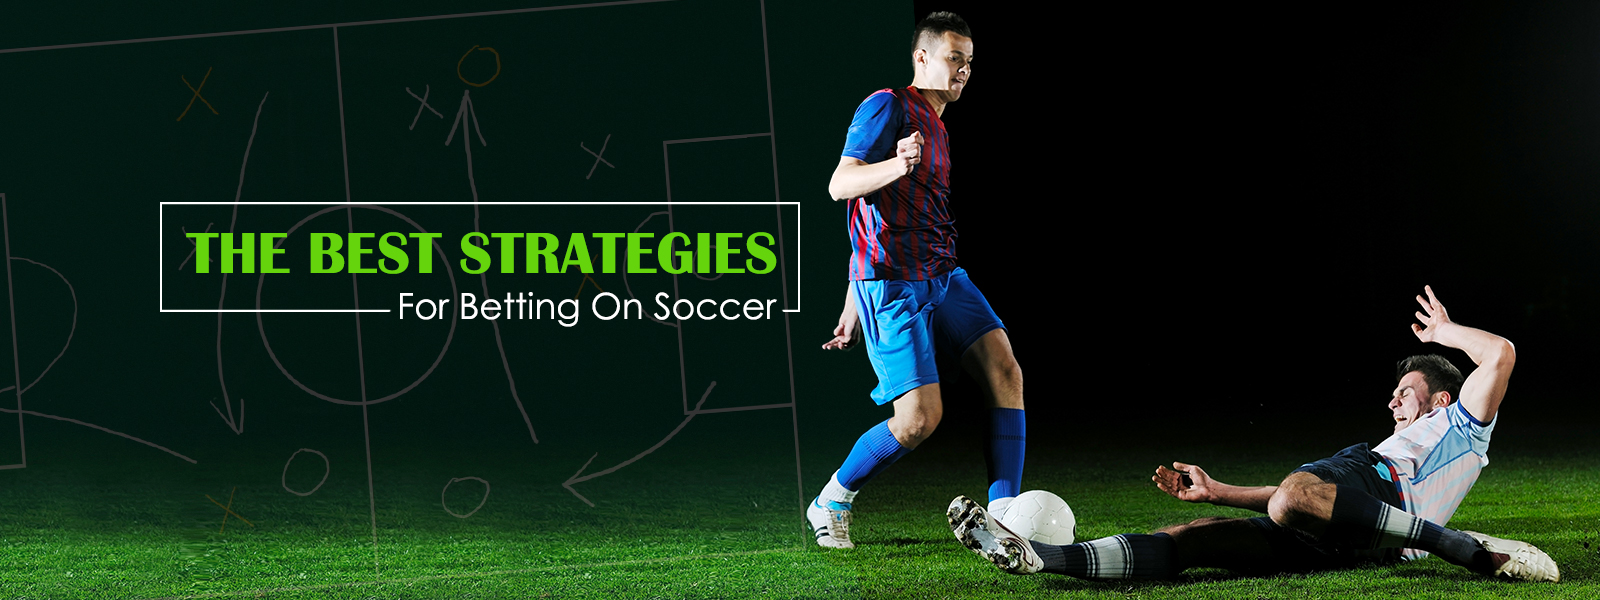 The Best Strategies For Betting On Soccer